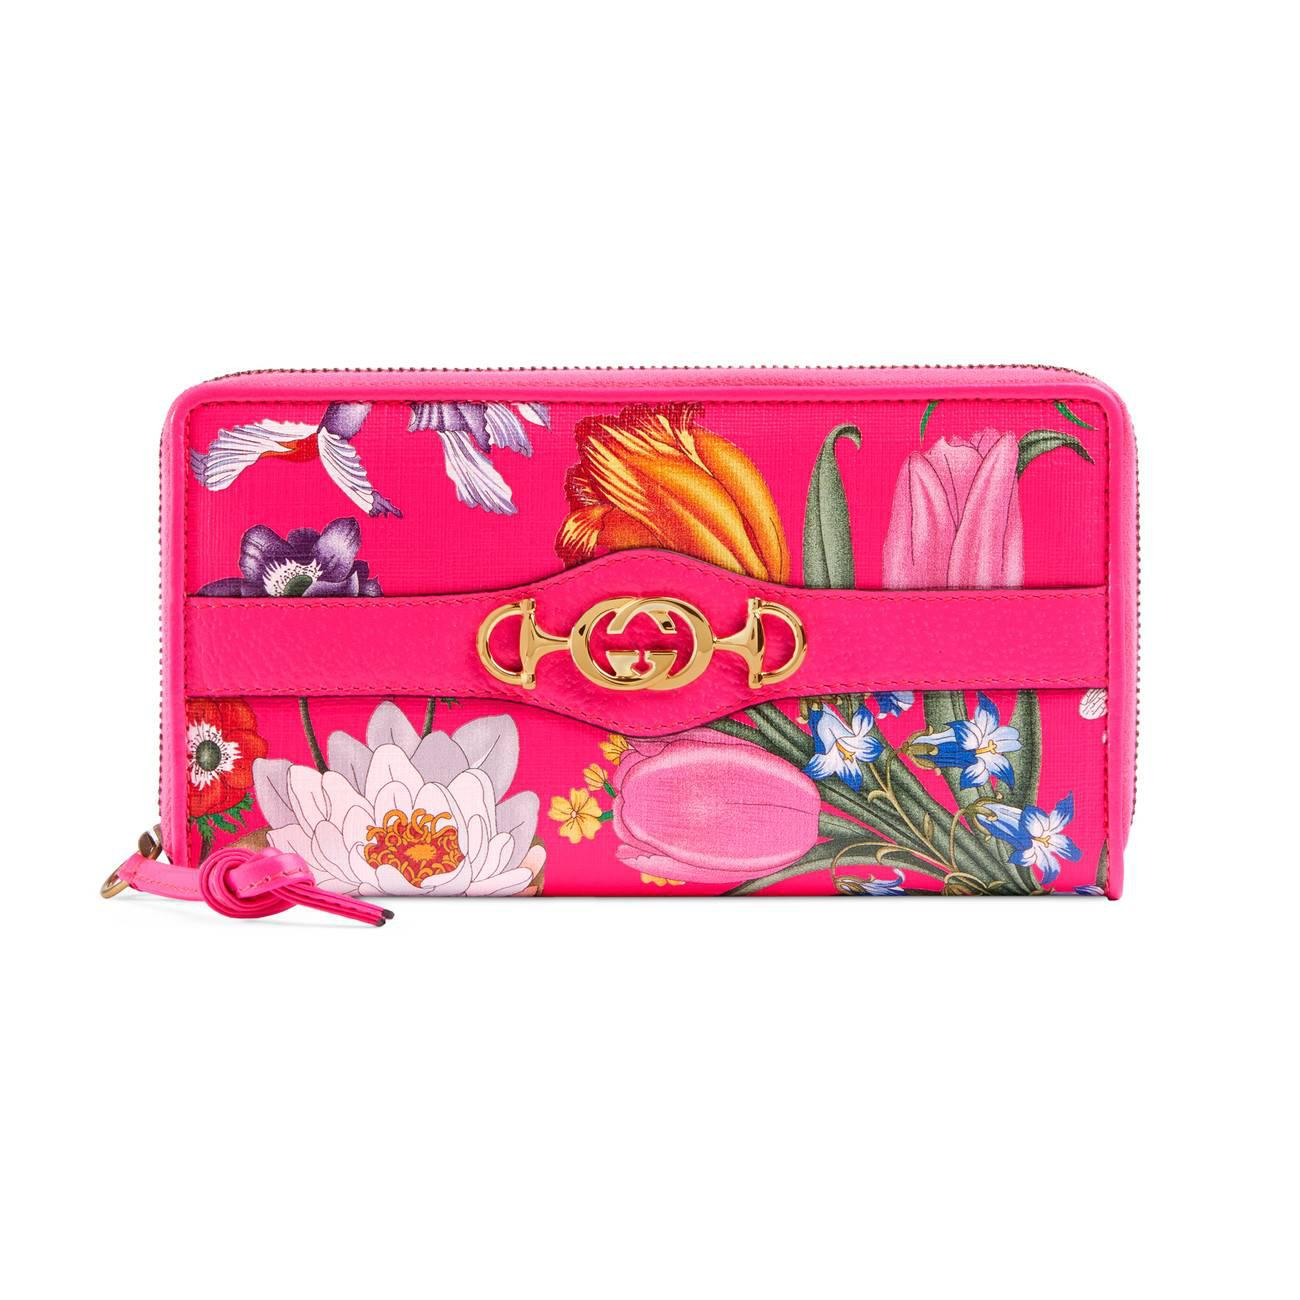 e597d66b9e1 Lyst - Gucci Women s Trapuntata Floral Leather Wallet - Fuchsia in Pink